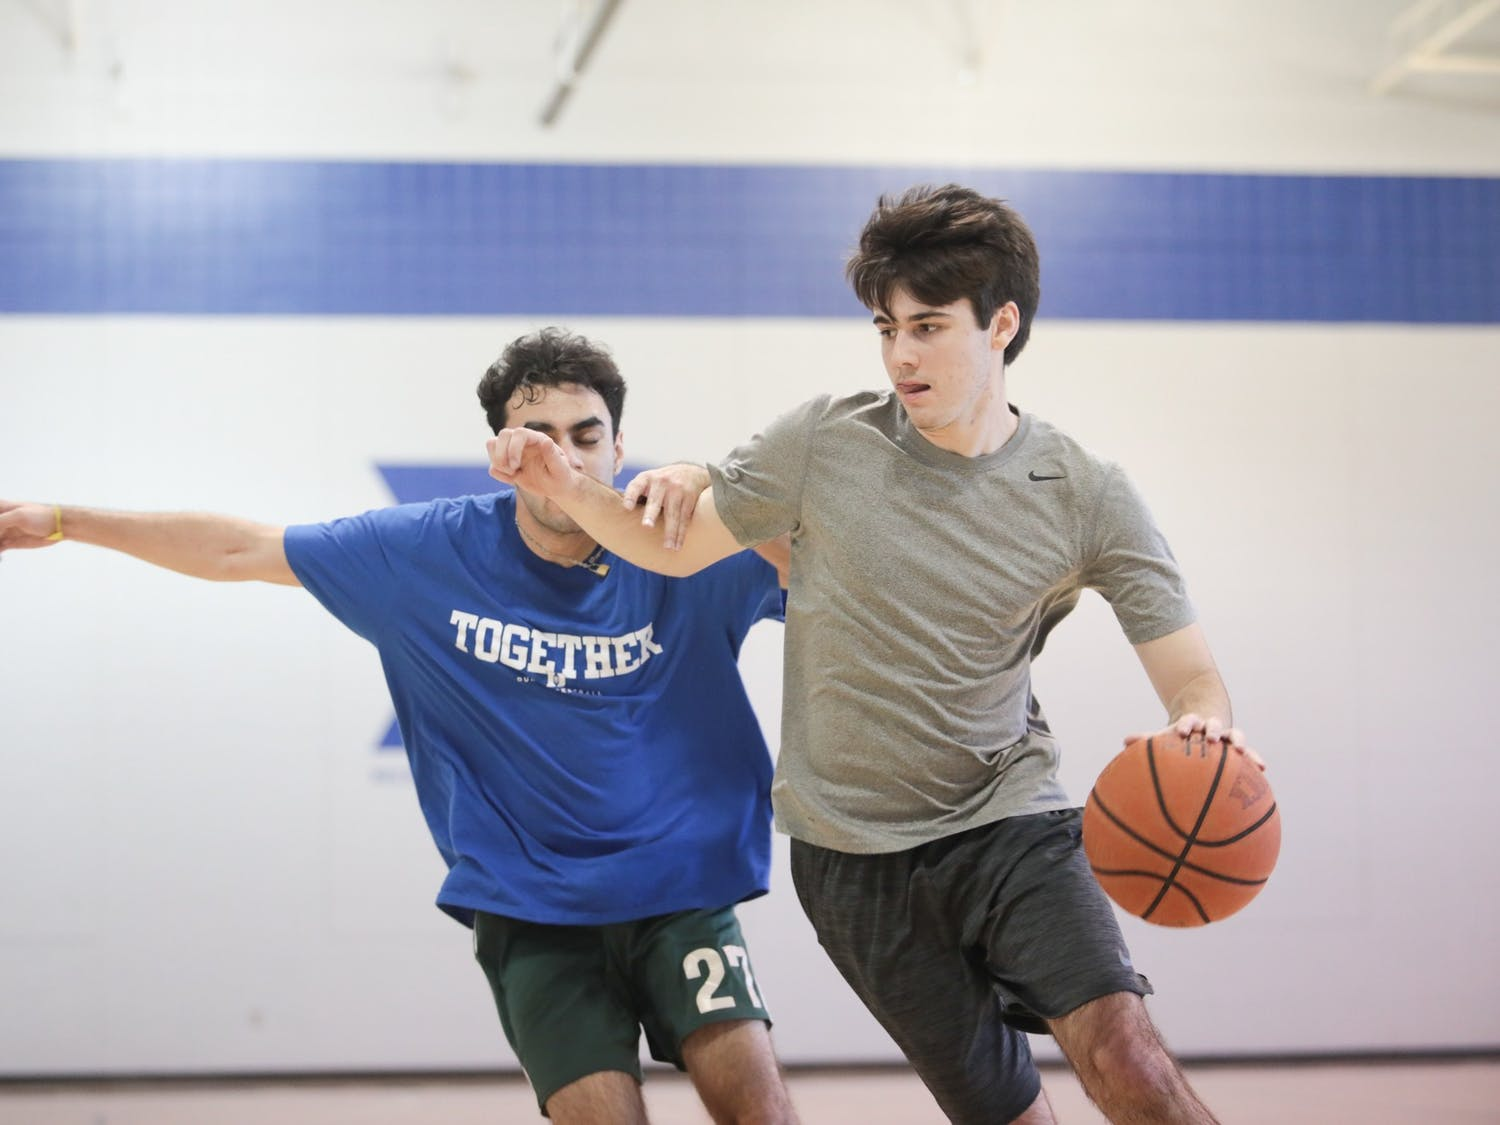 Ryan Wilcox (right), sports editor of The Daily Tar Heel, dribbles past a Duke Chronicle staffer during a scrimmage in Brodie Recreation Center on Duke's campus on Sunday, Jan. 26, 2020. The Daily Tar Heel beat the Chronicle three games to one.